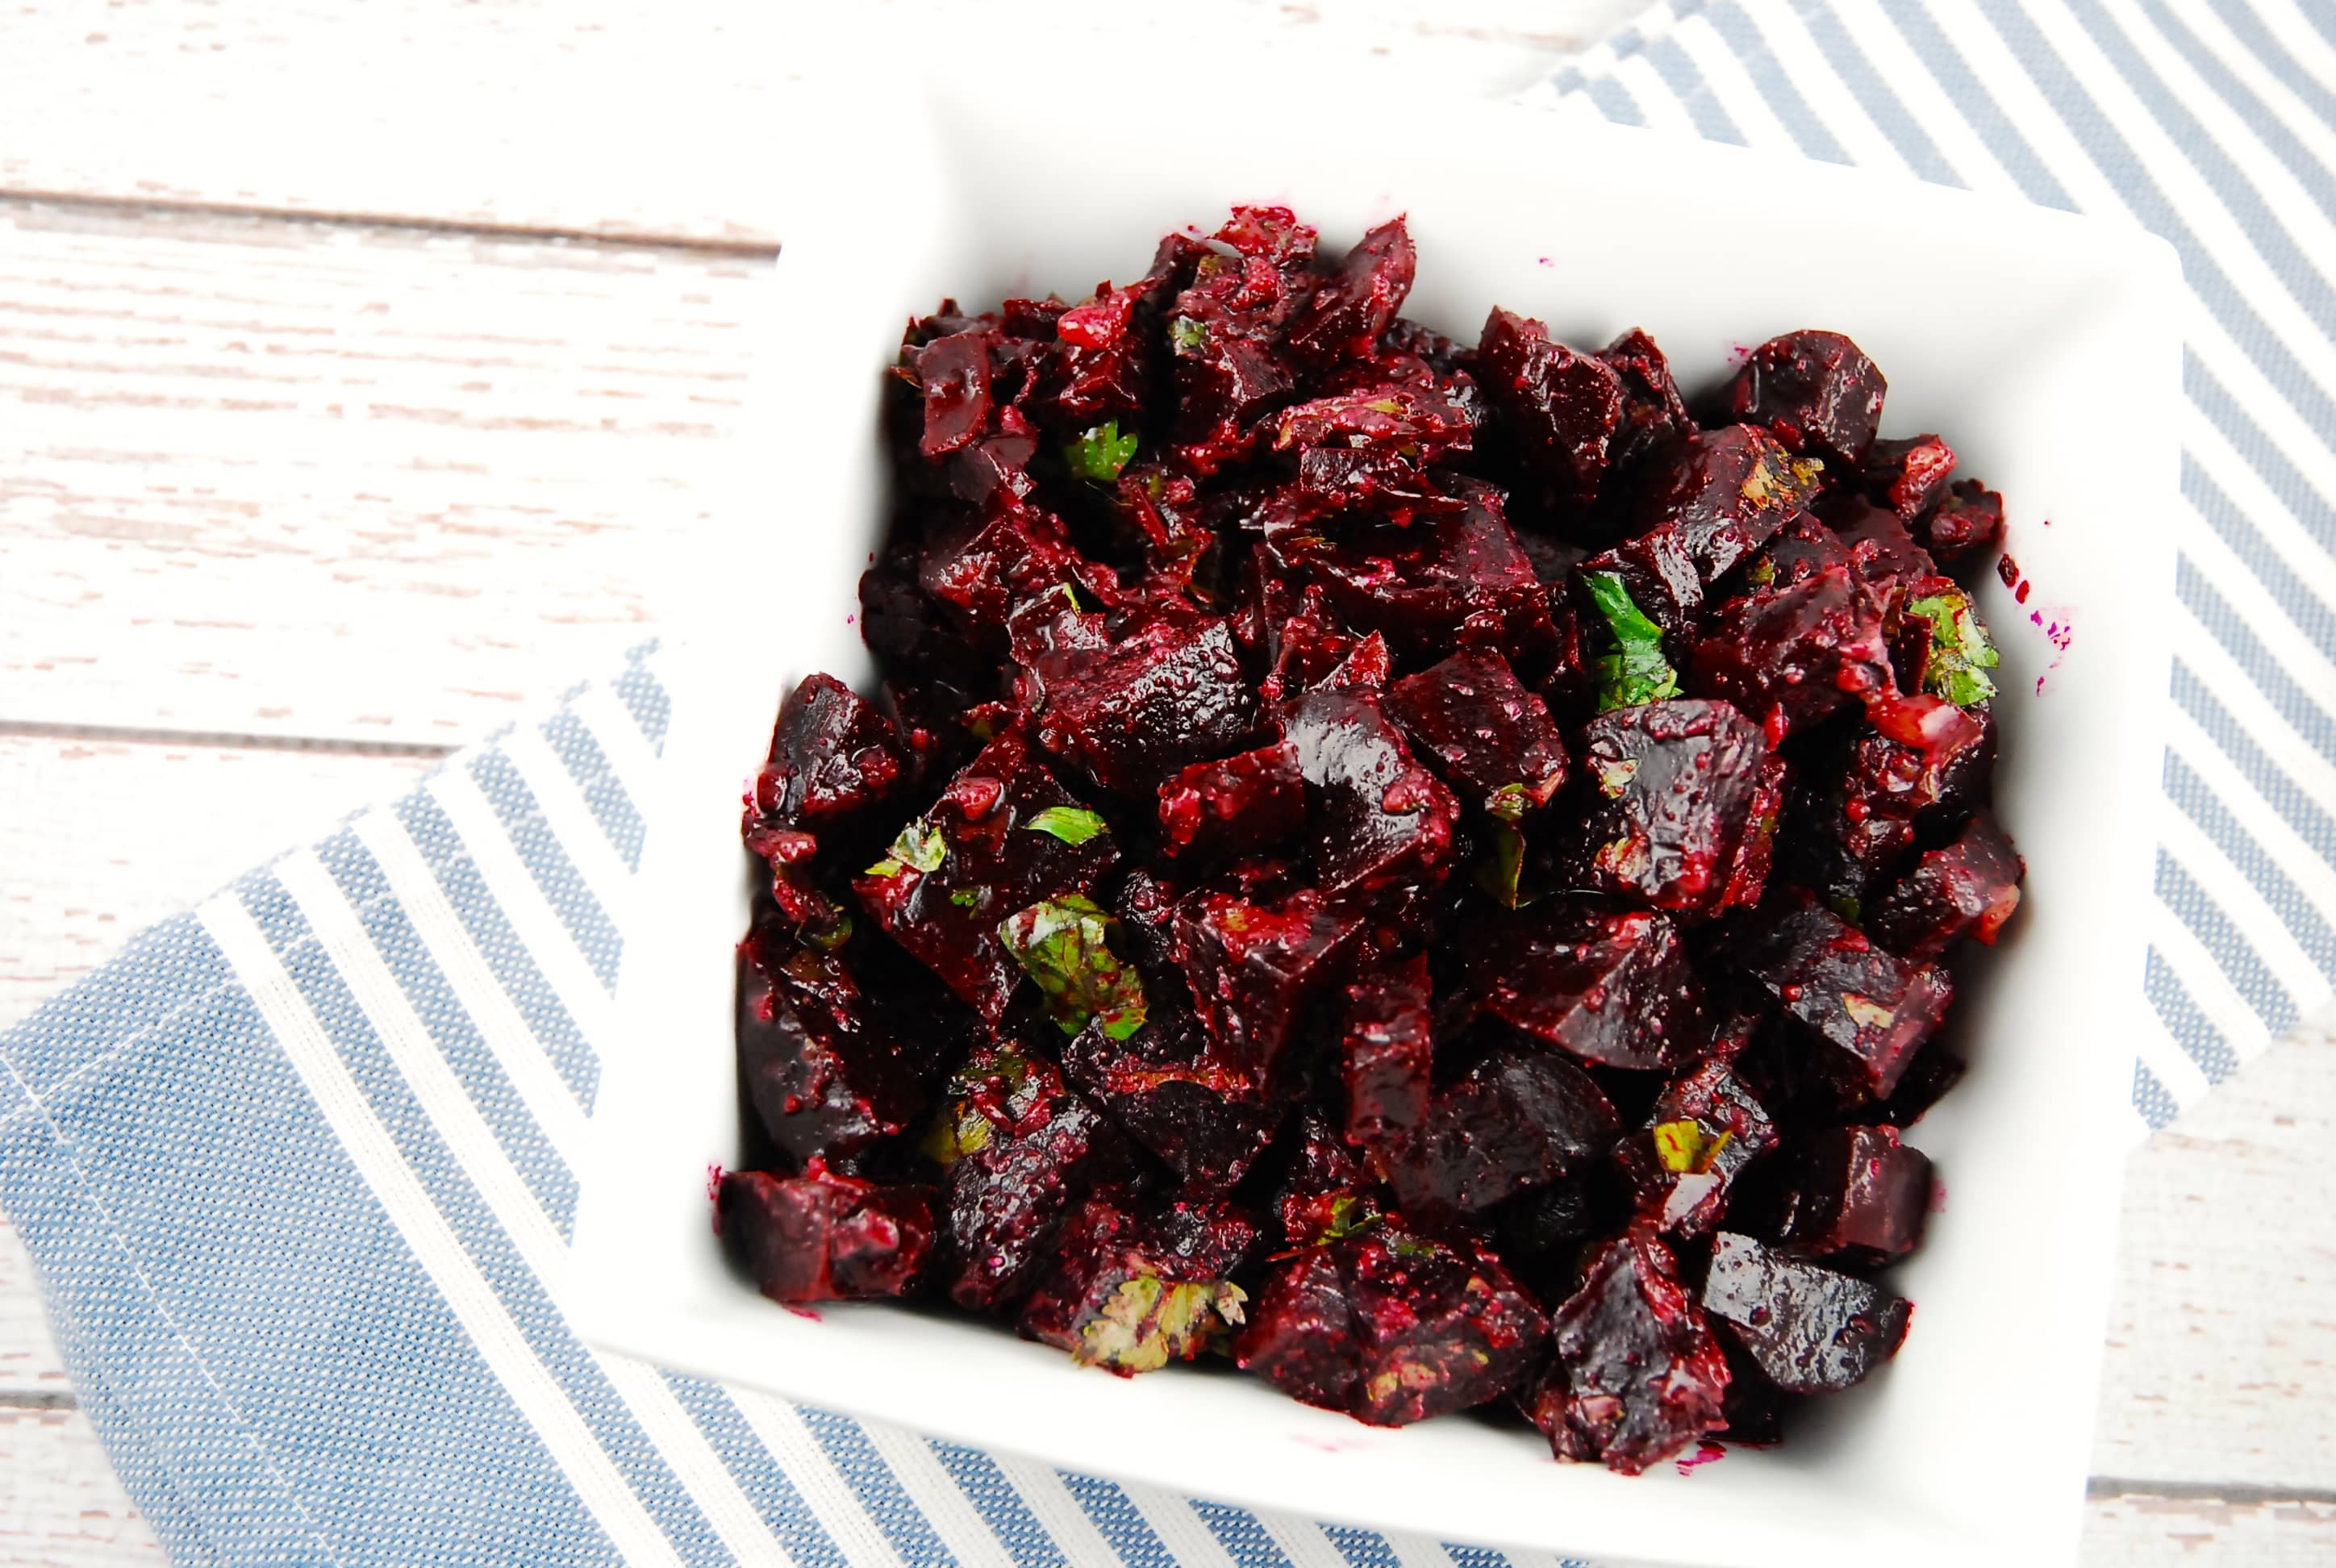 How to originally make beetroot salad without mayonnaise 3